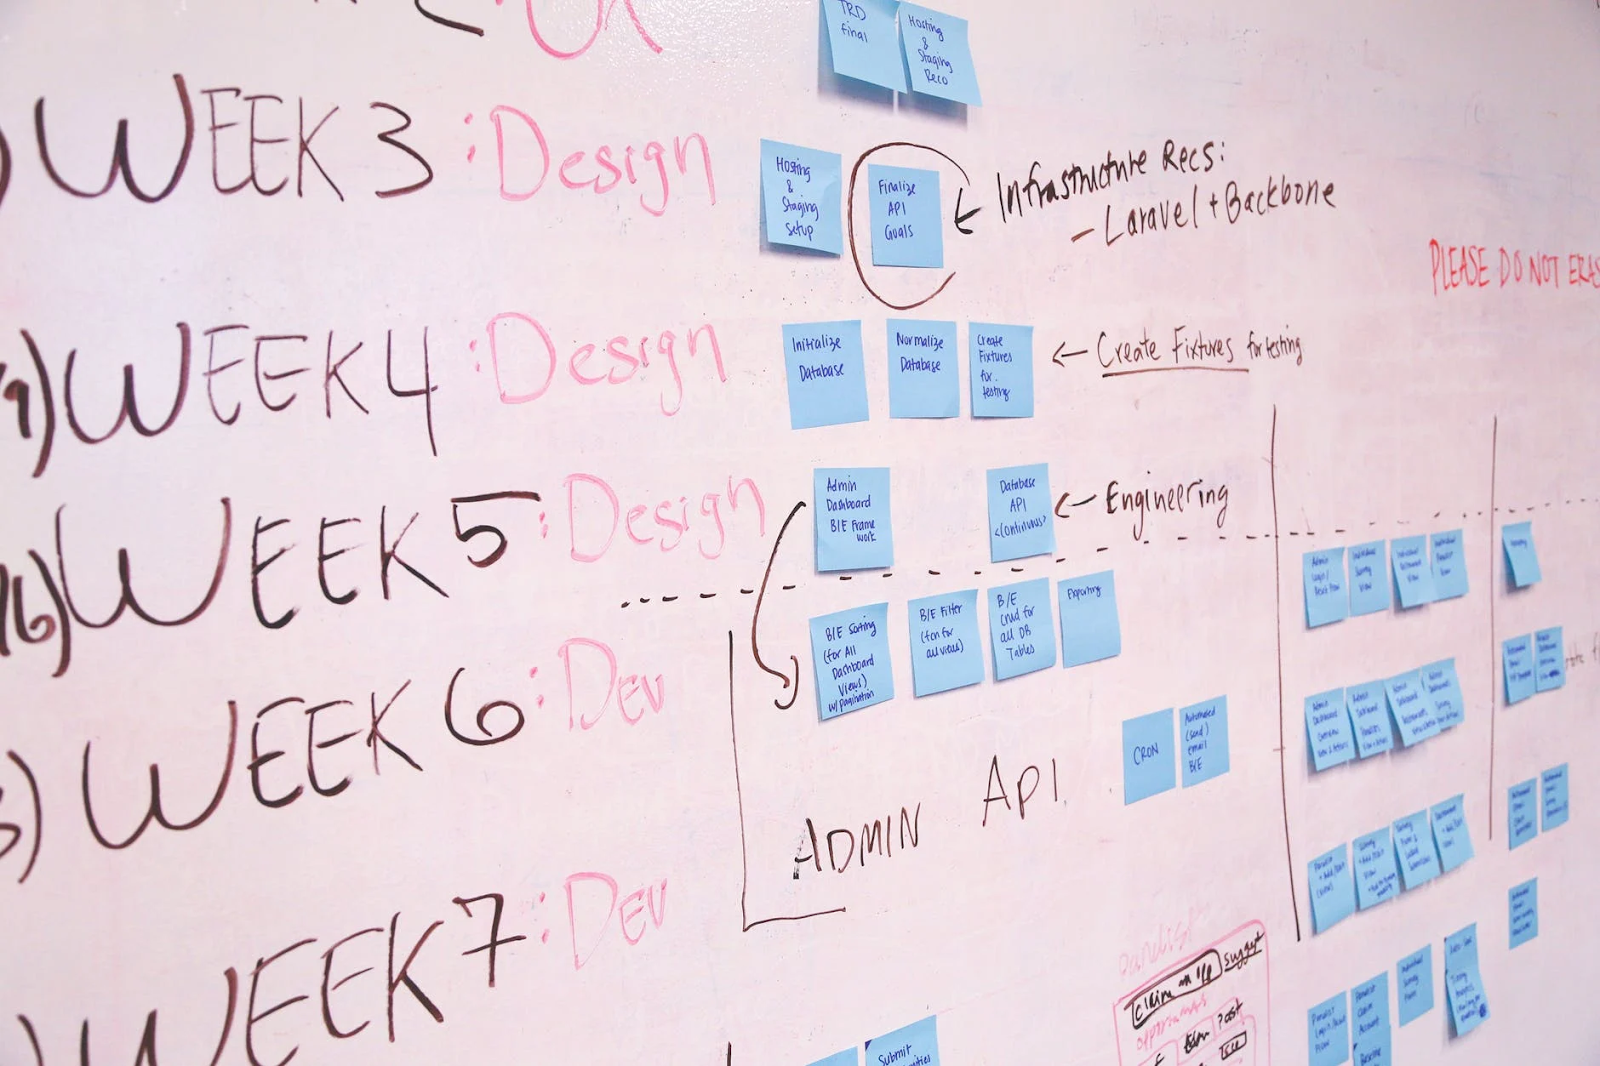 Software engineering and development process on a white board